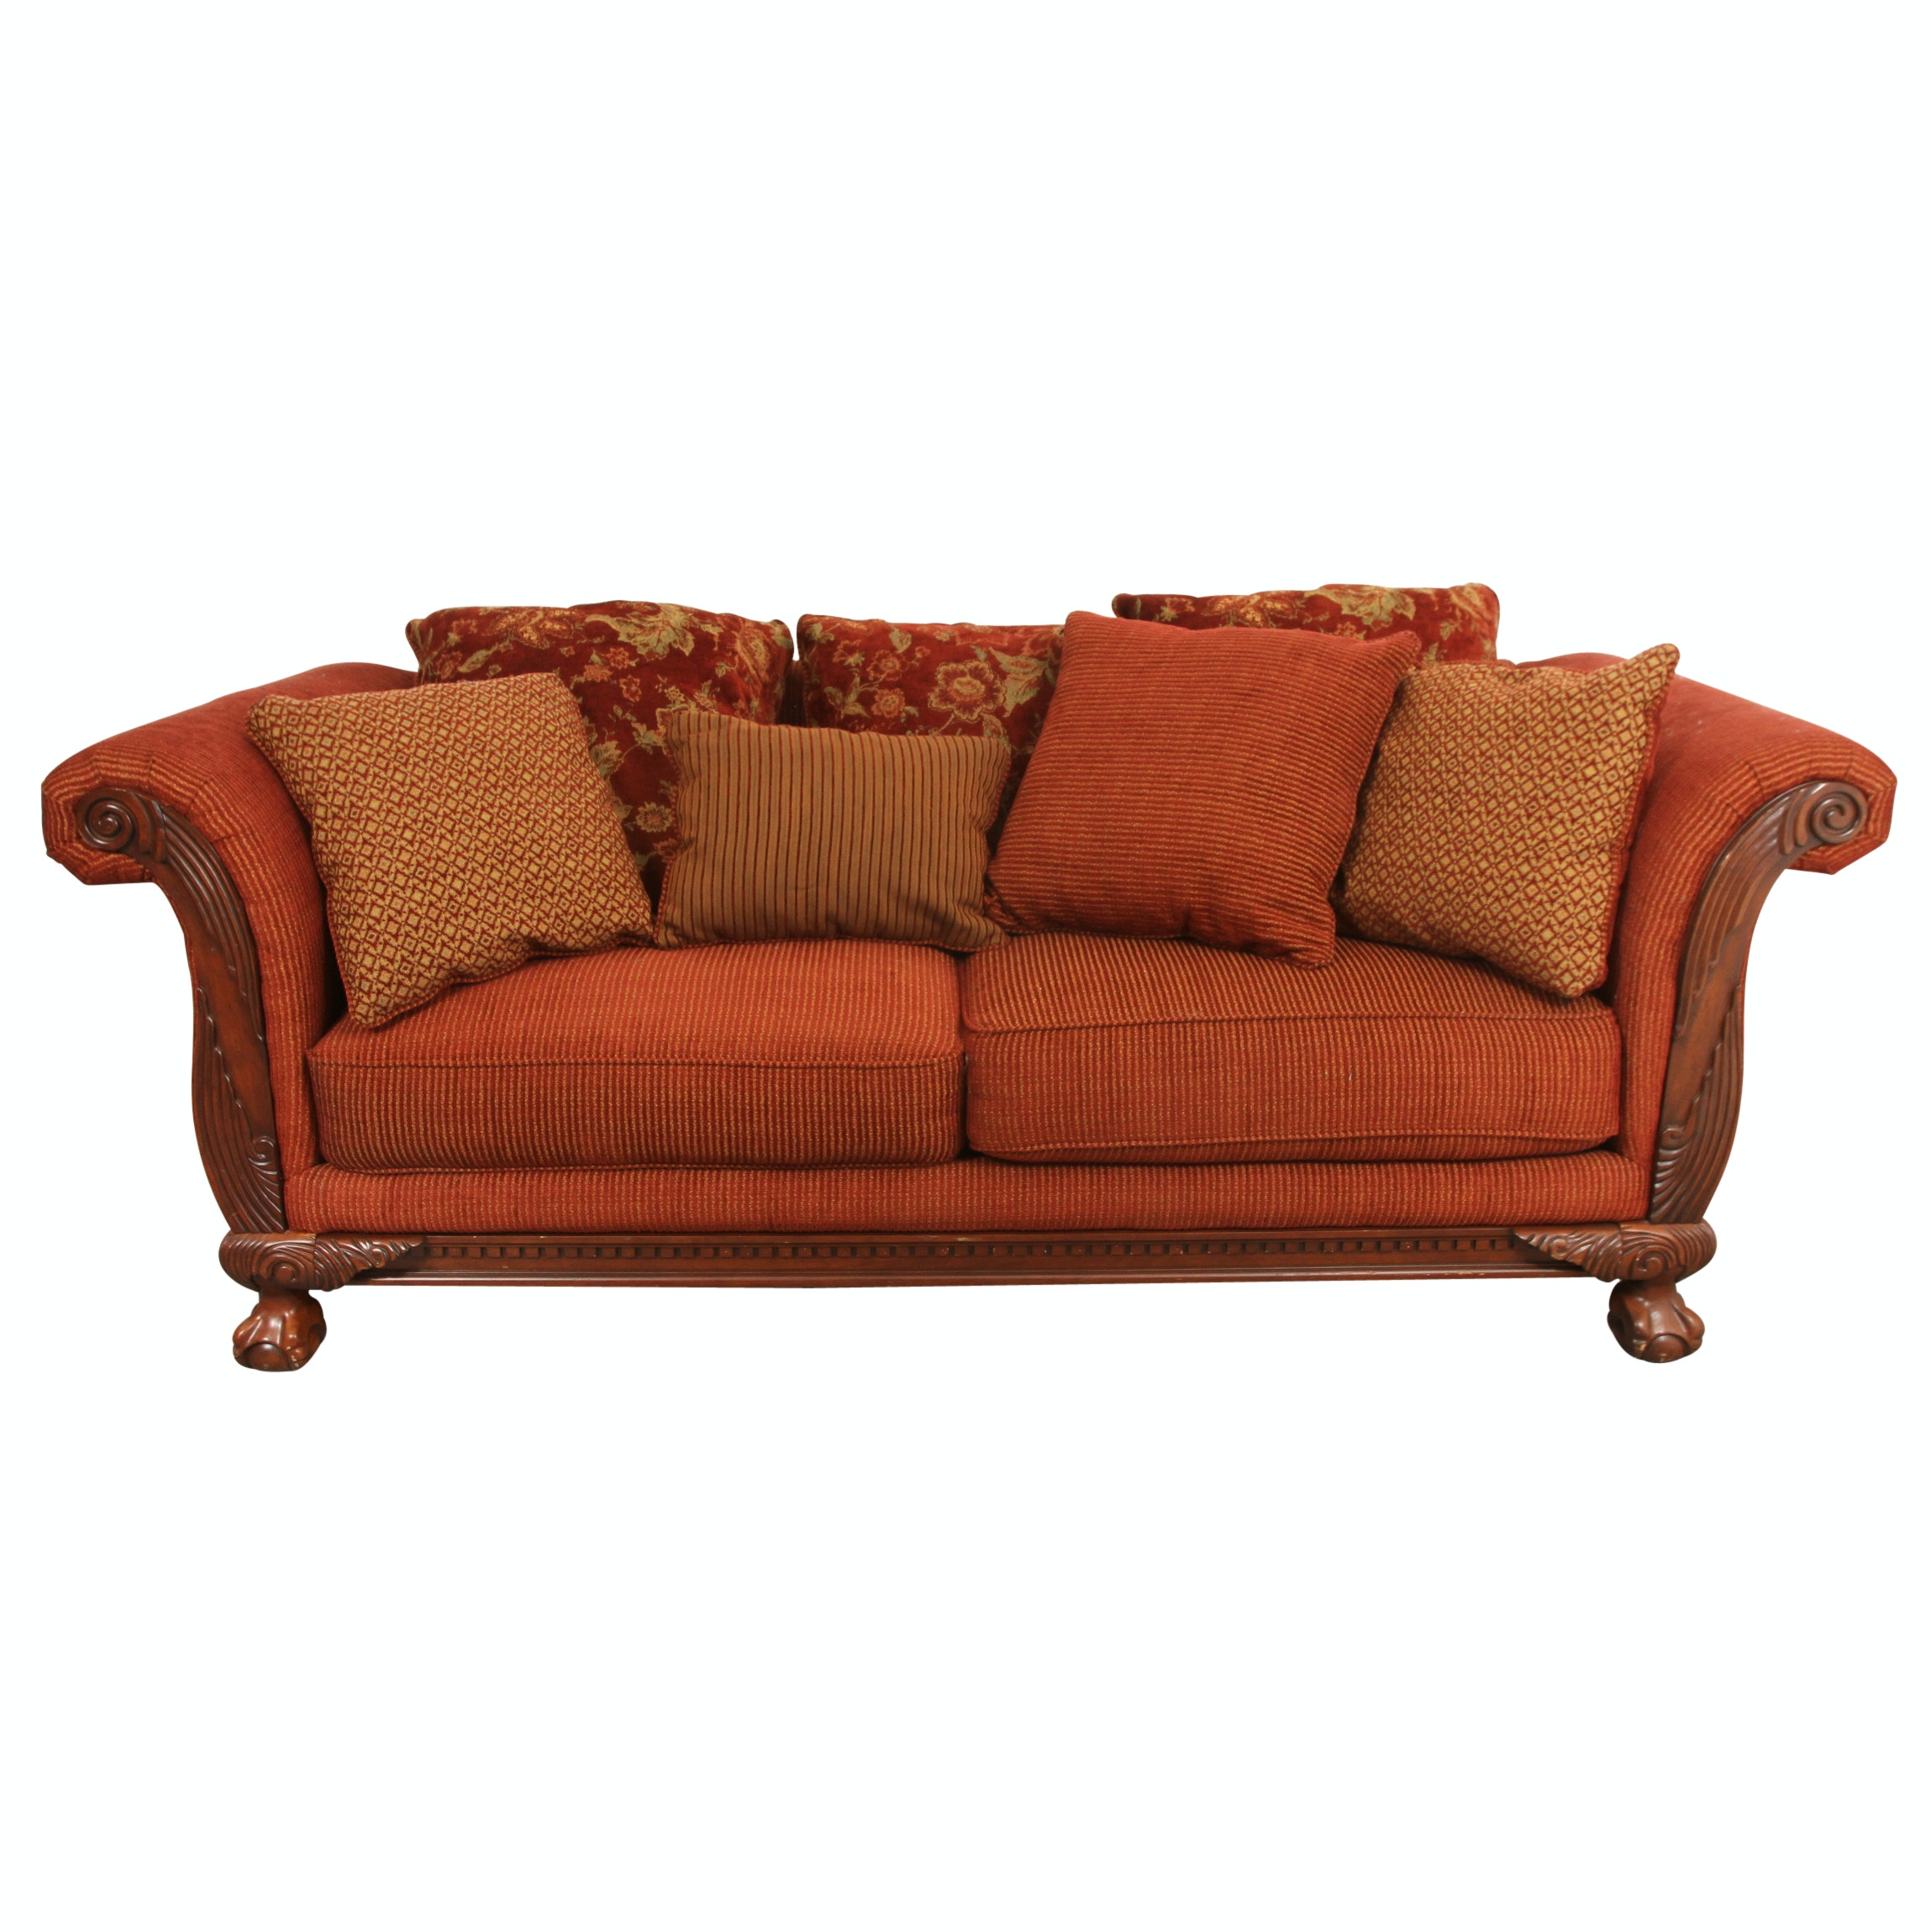 Charming Chippendale Sofa By Sofa Express ...